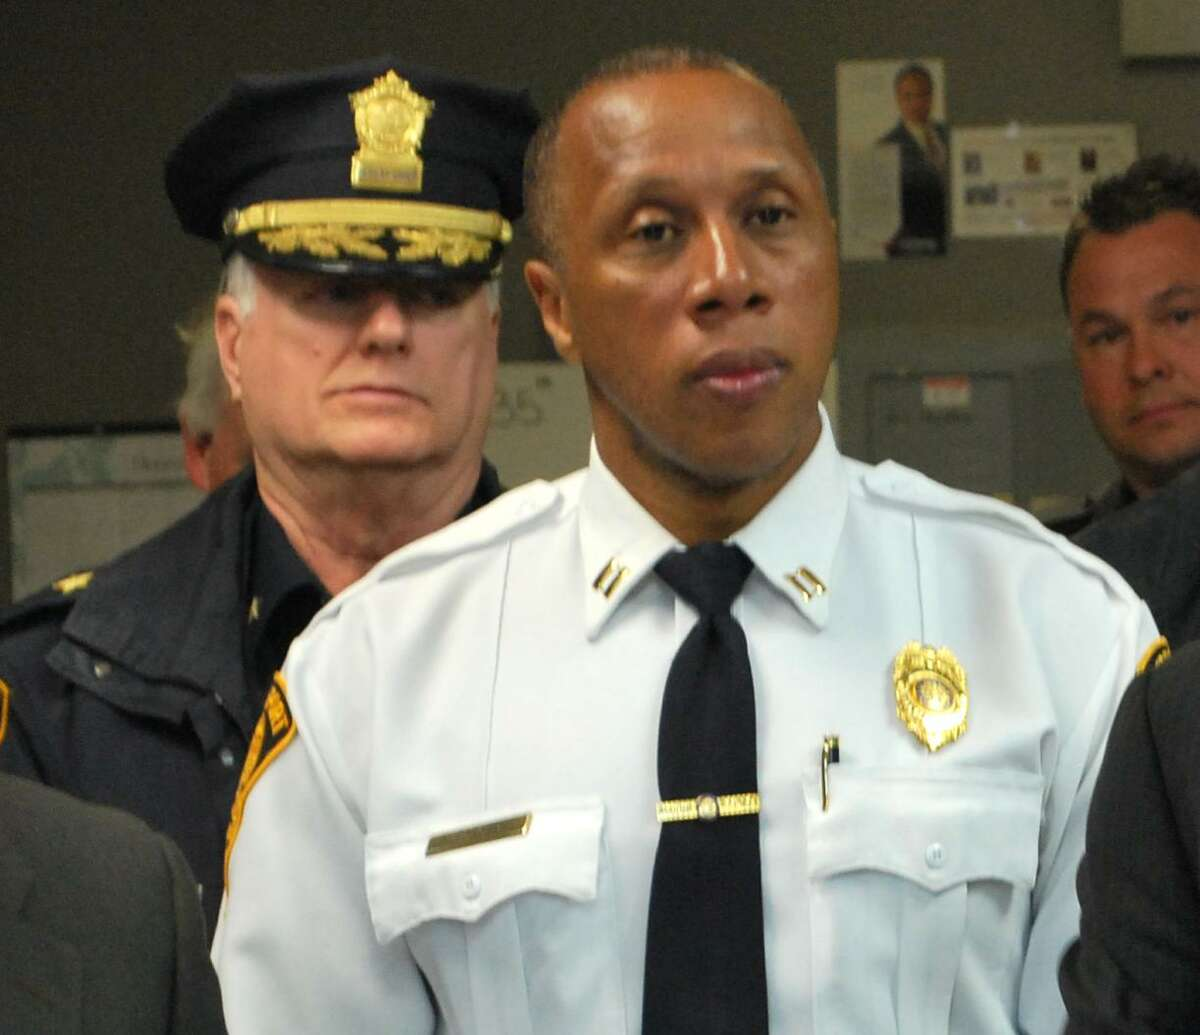 Police Captain Roderick Porter at a press conference on Monday, March 14, 2016. Behind Porter is Deputy Police Chief James Honis.